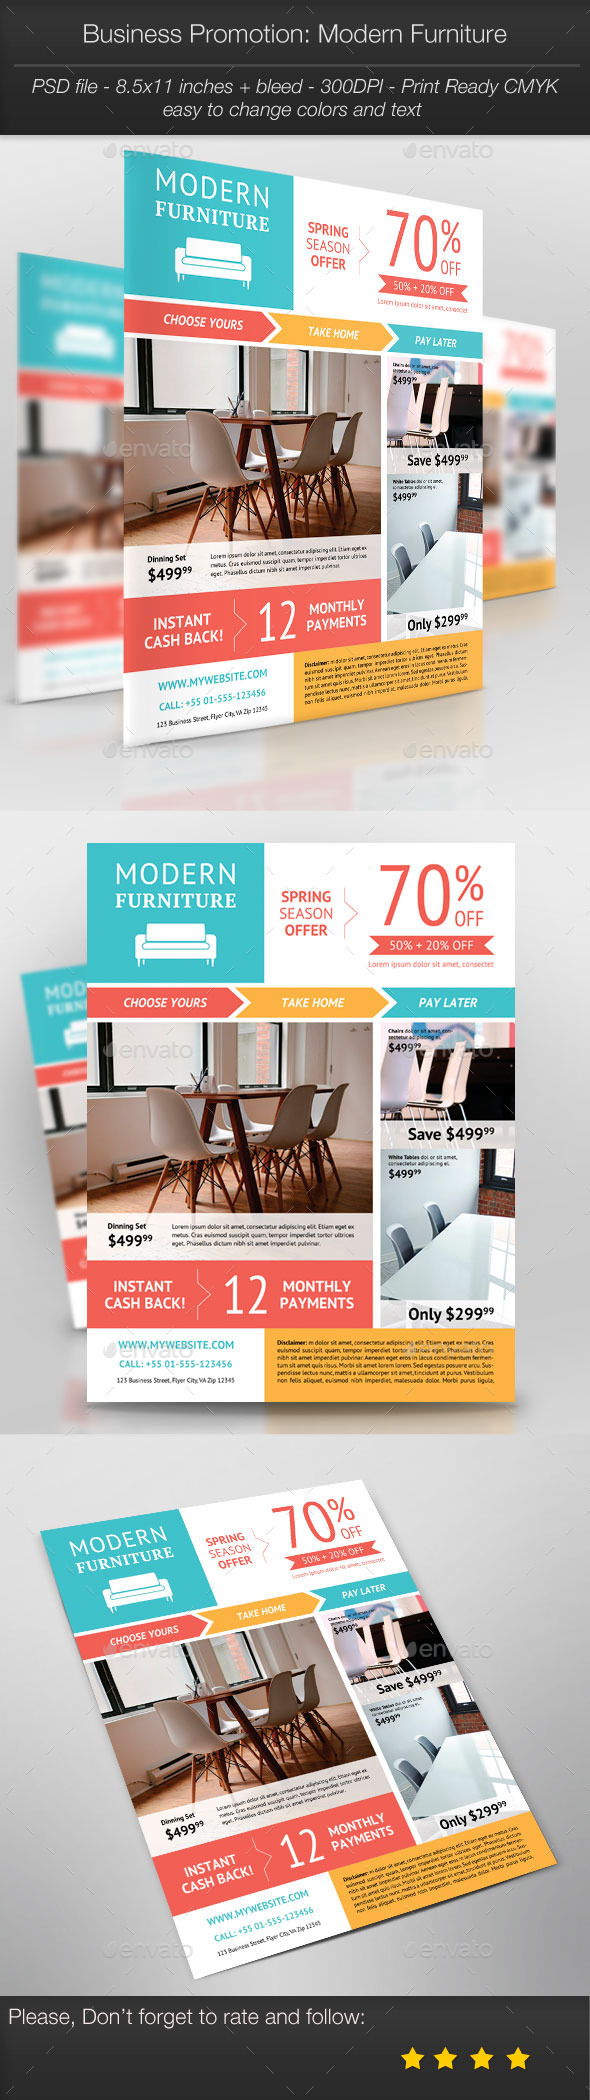 GraphicRiver Business Promotion Modern Furniture 10987969